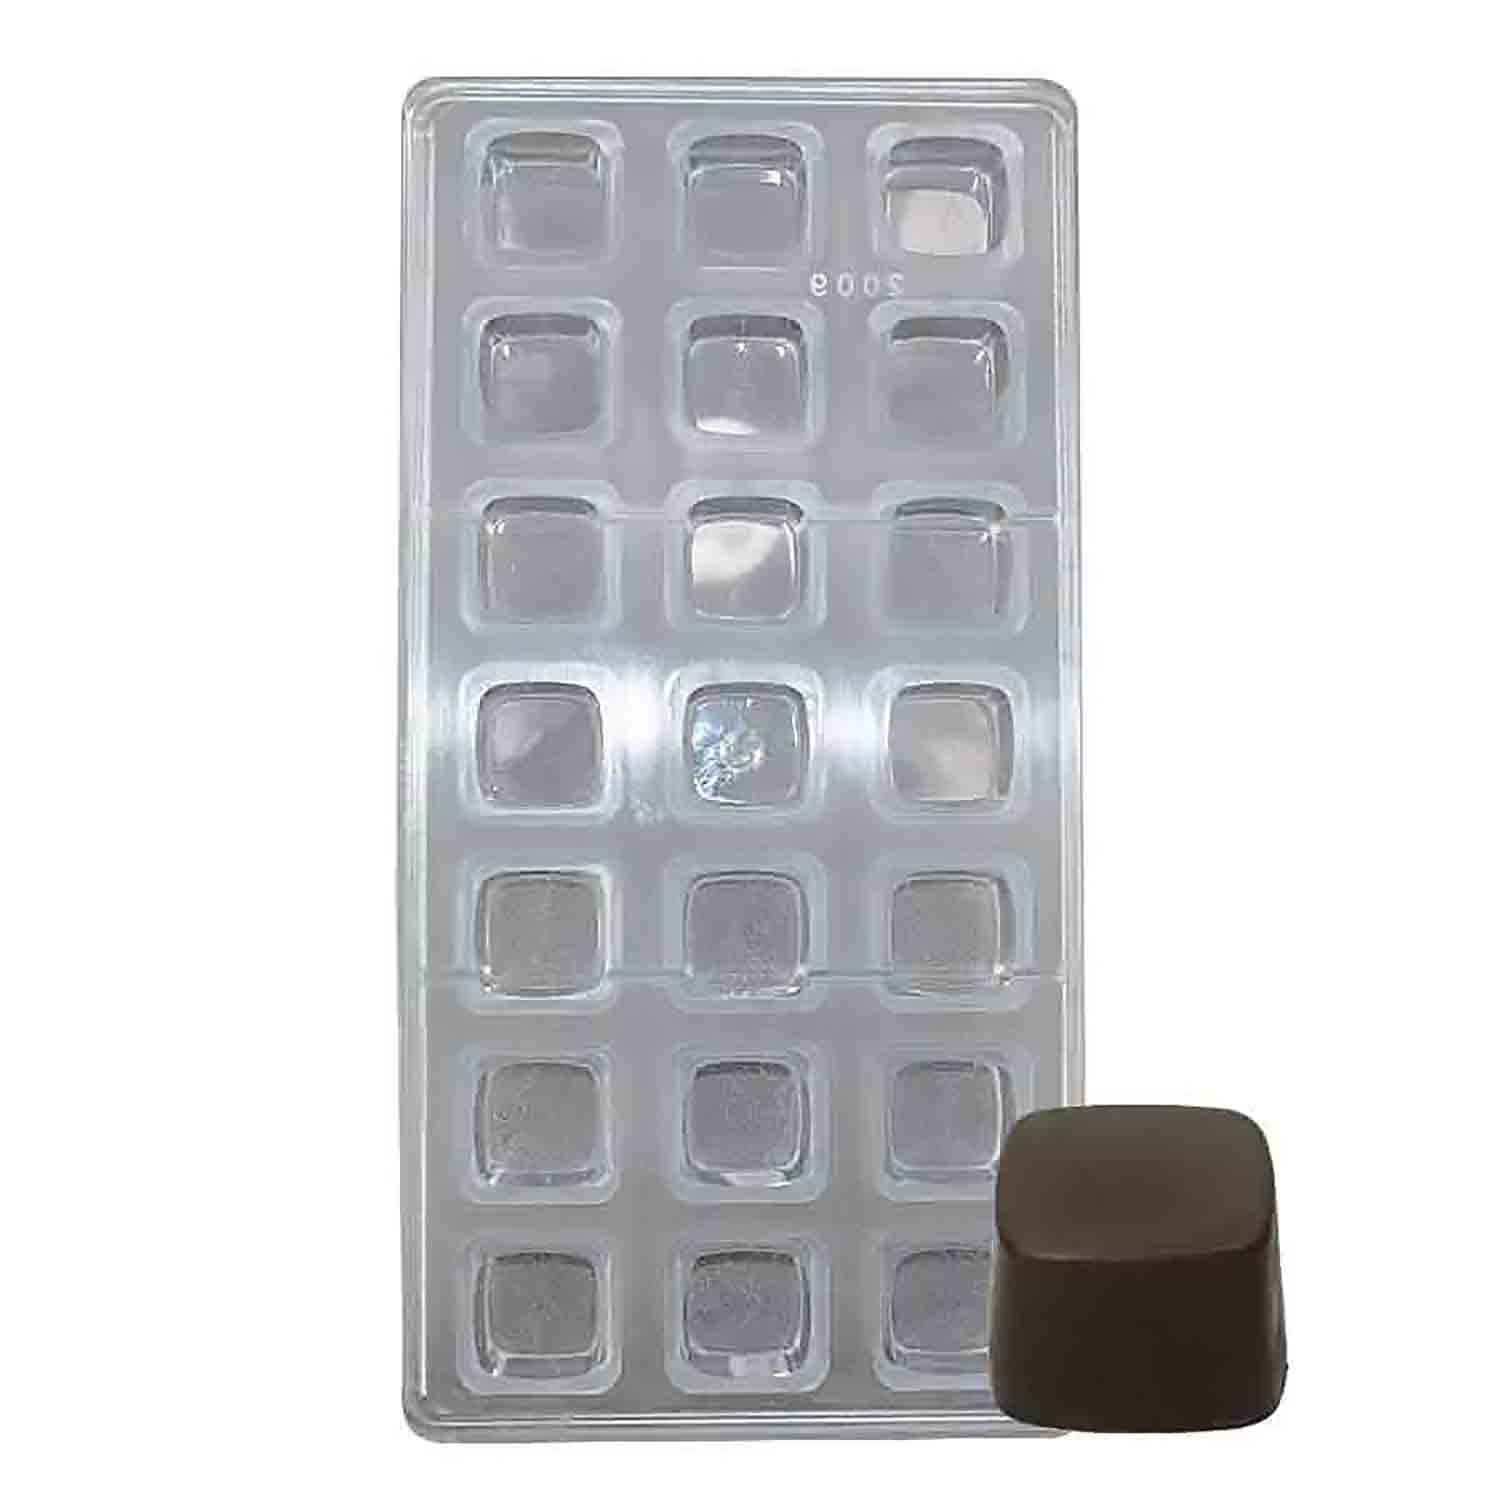 Square Polycarbonate Chocolate Candy Mold NY PC2009